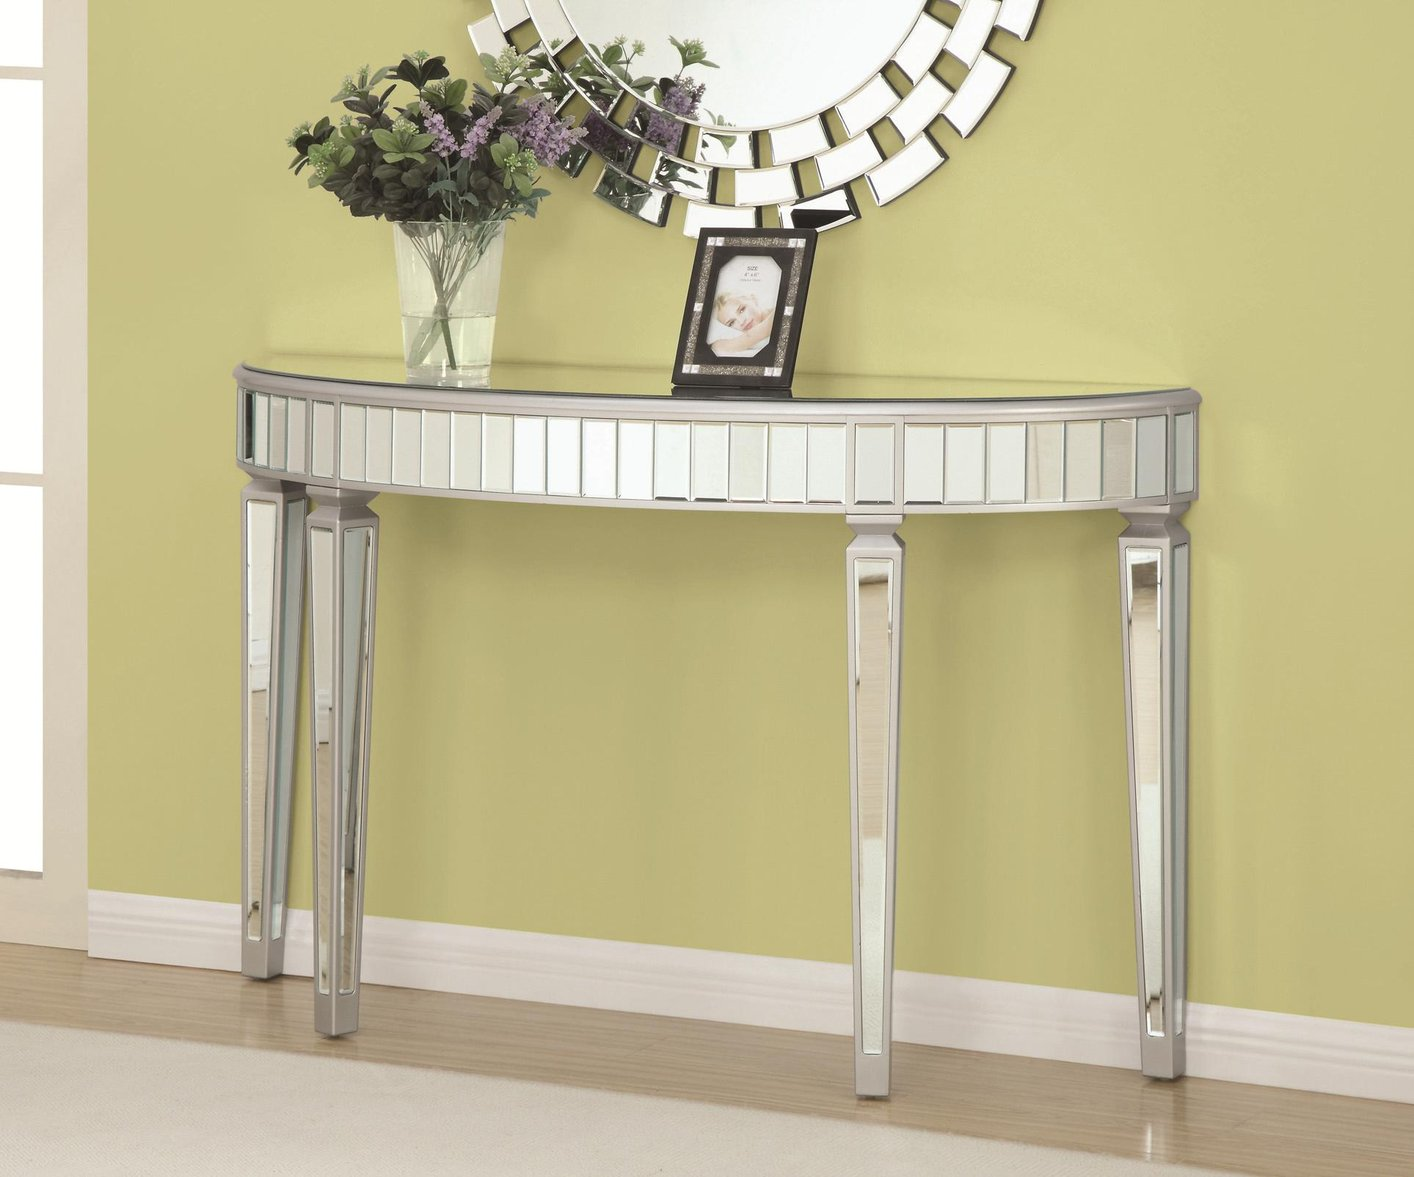 Supple Silver Metal Console Table Silver Metal Console Table Furniture Outlet Los Glass Console Table Melbourne Glass Console Table Amazon houzz-03 Glass Console Table